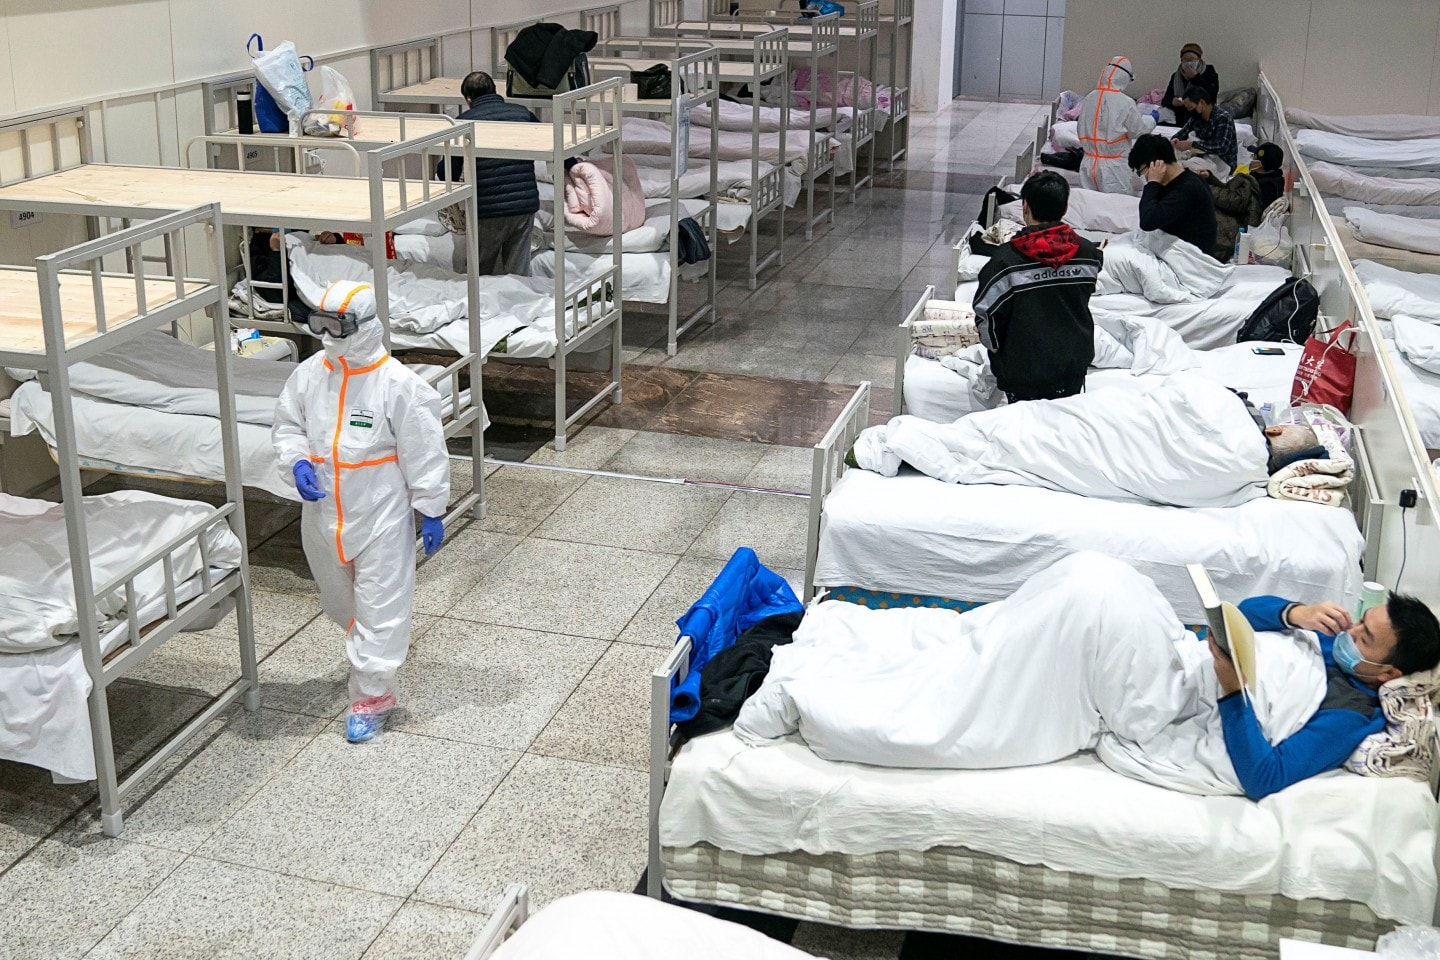 Medical workers in protective suits attend to patients at the Wuhan International Conference and Exhibition Center, which has been converted into a makeshift hospital, in Wuhan, China, on Feb. 5. (China Daily/Reuters)